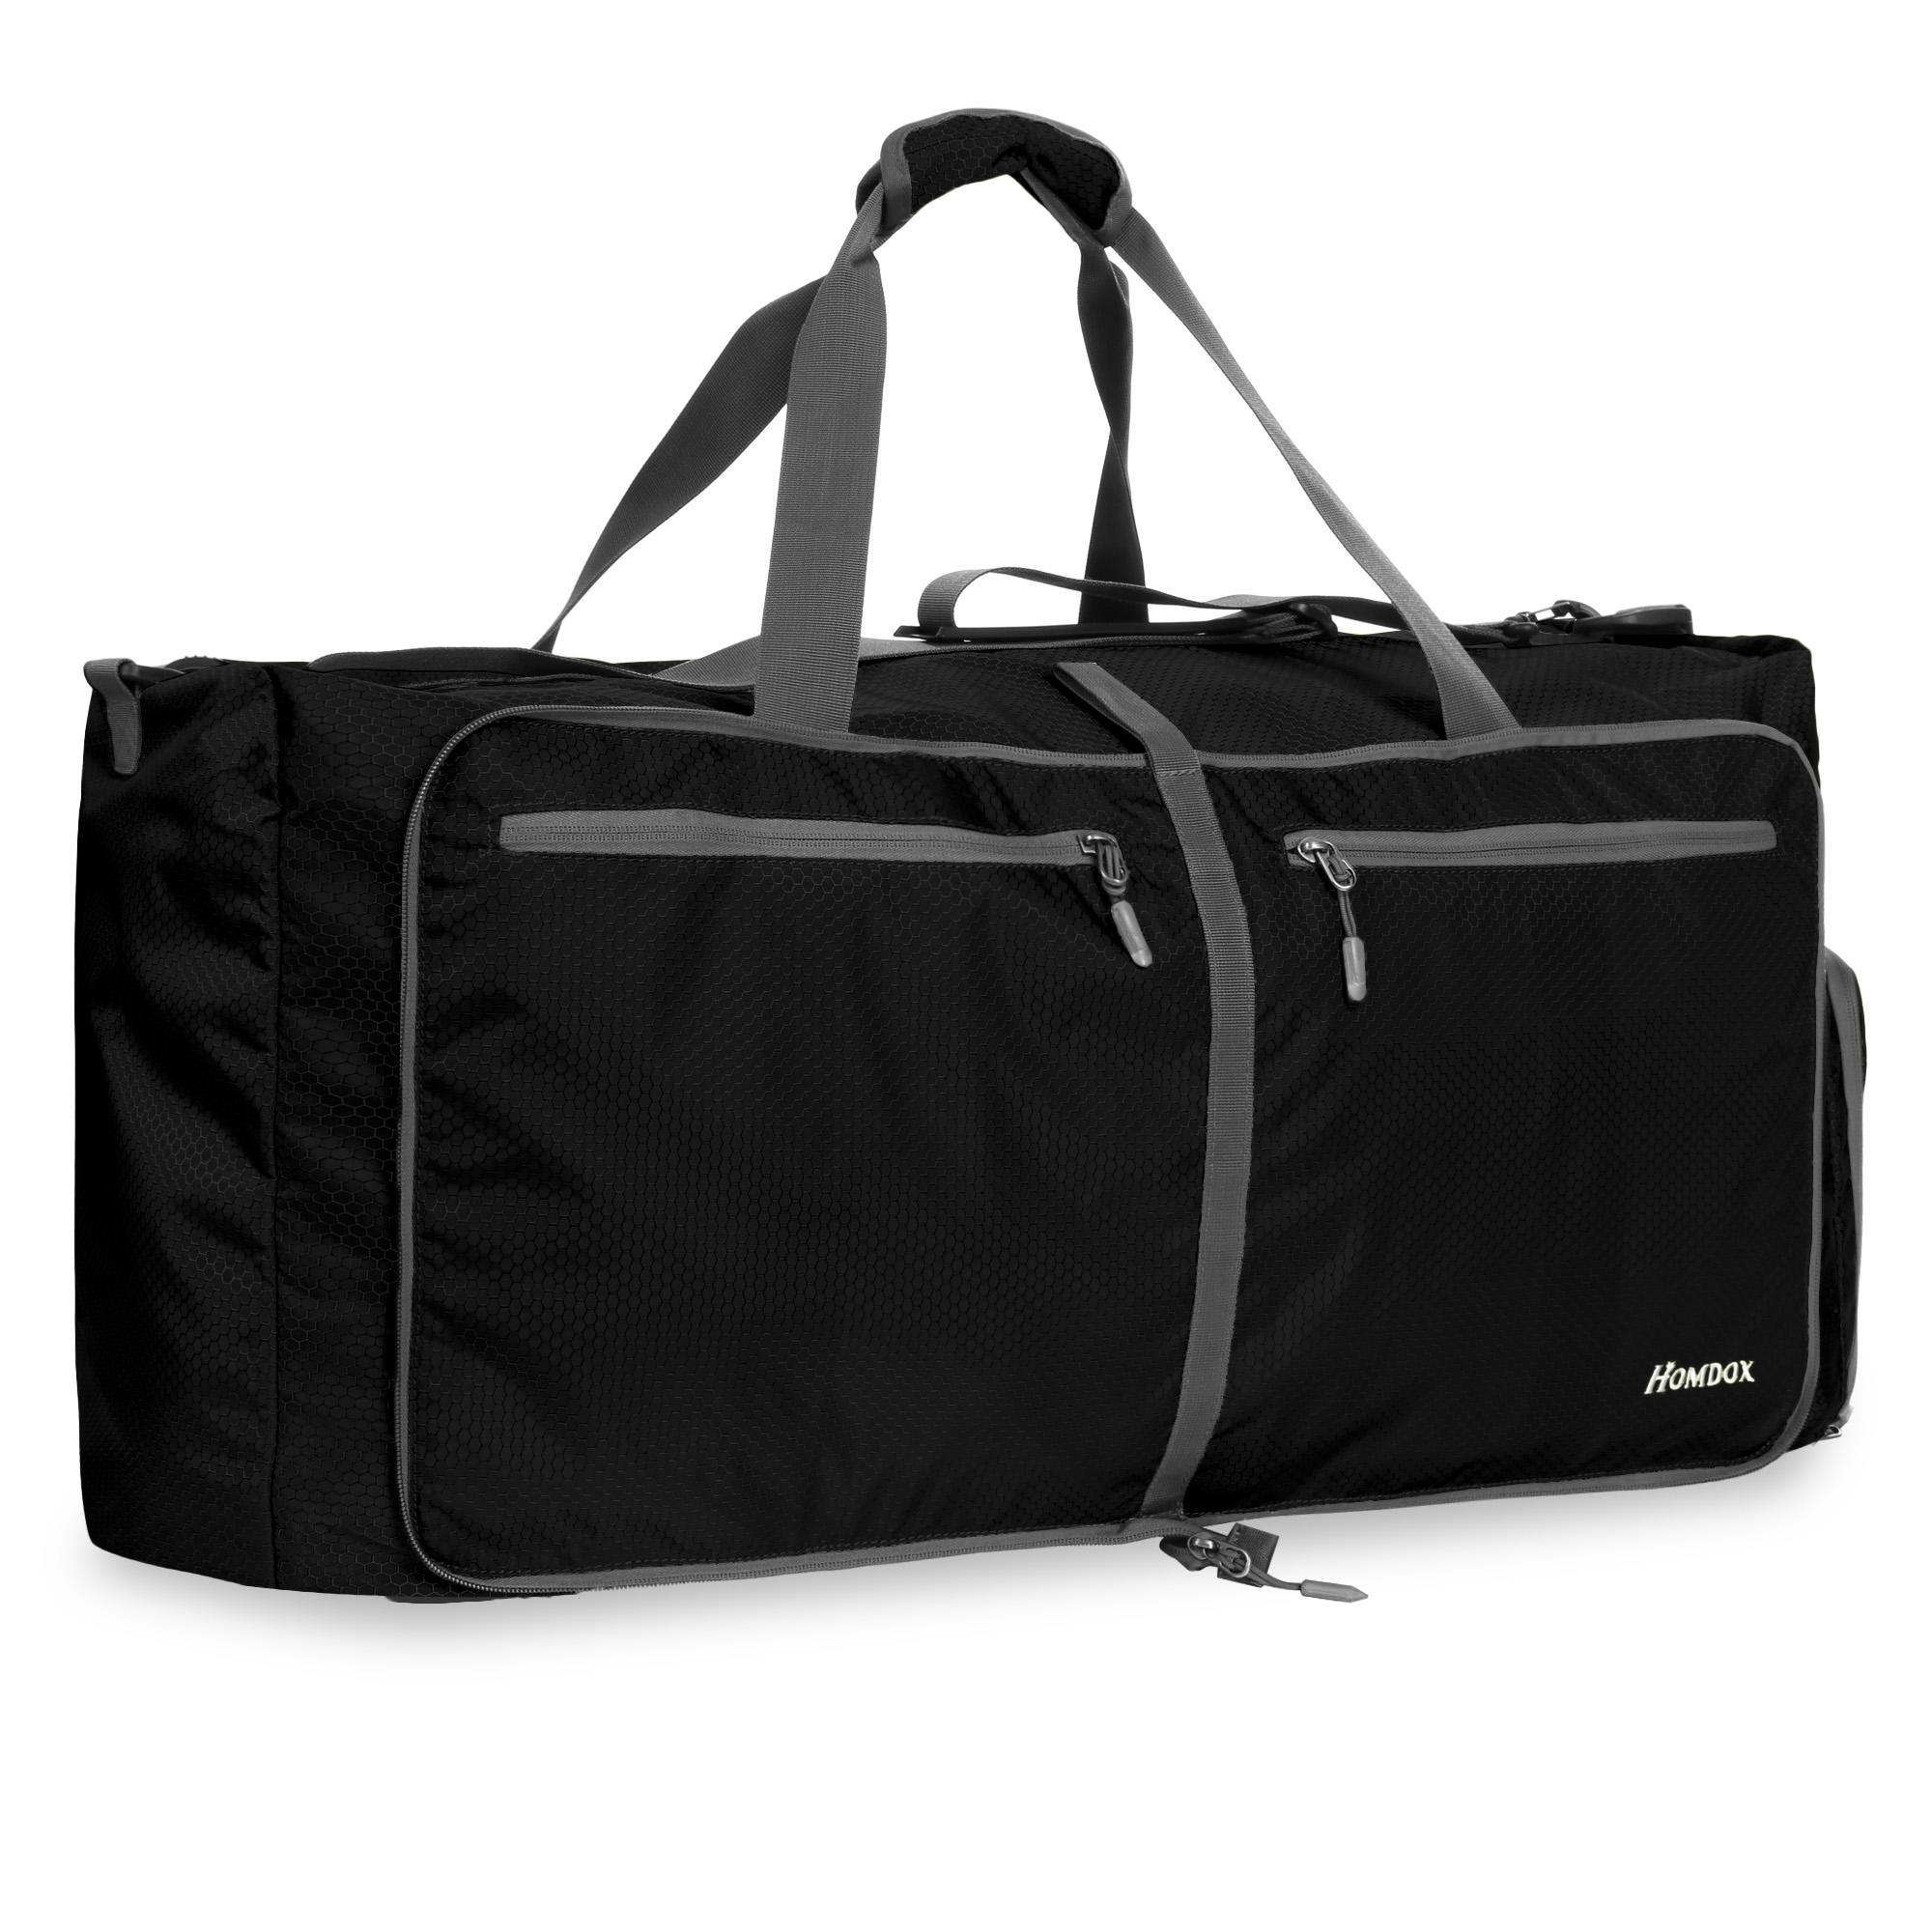 80 L Sports Duffle Bag Gym Bag Travel Duffel